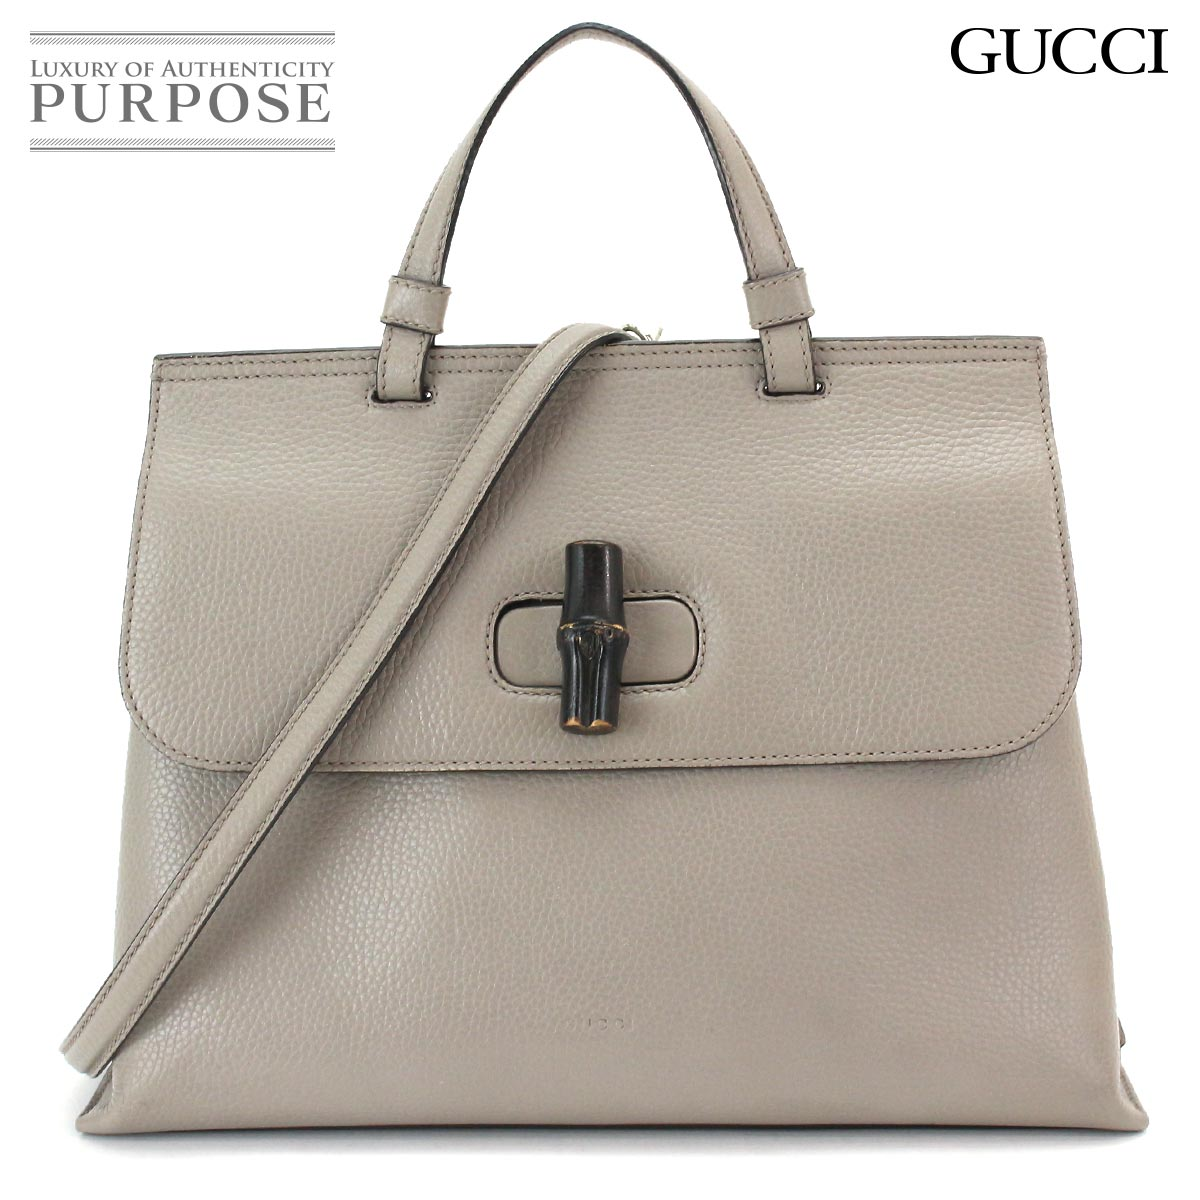 41e4a797e6f7 Gucci GUCCI bamboo daily medium 2way hand shoulder bag leather gray 392013  204990 [used] brand